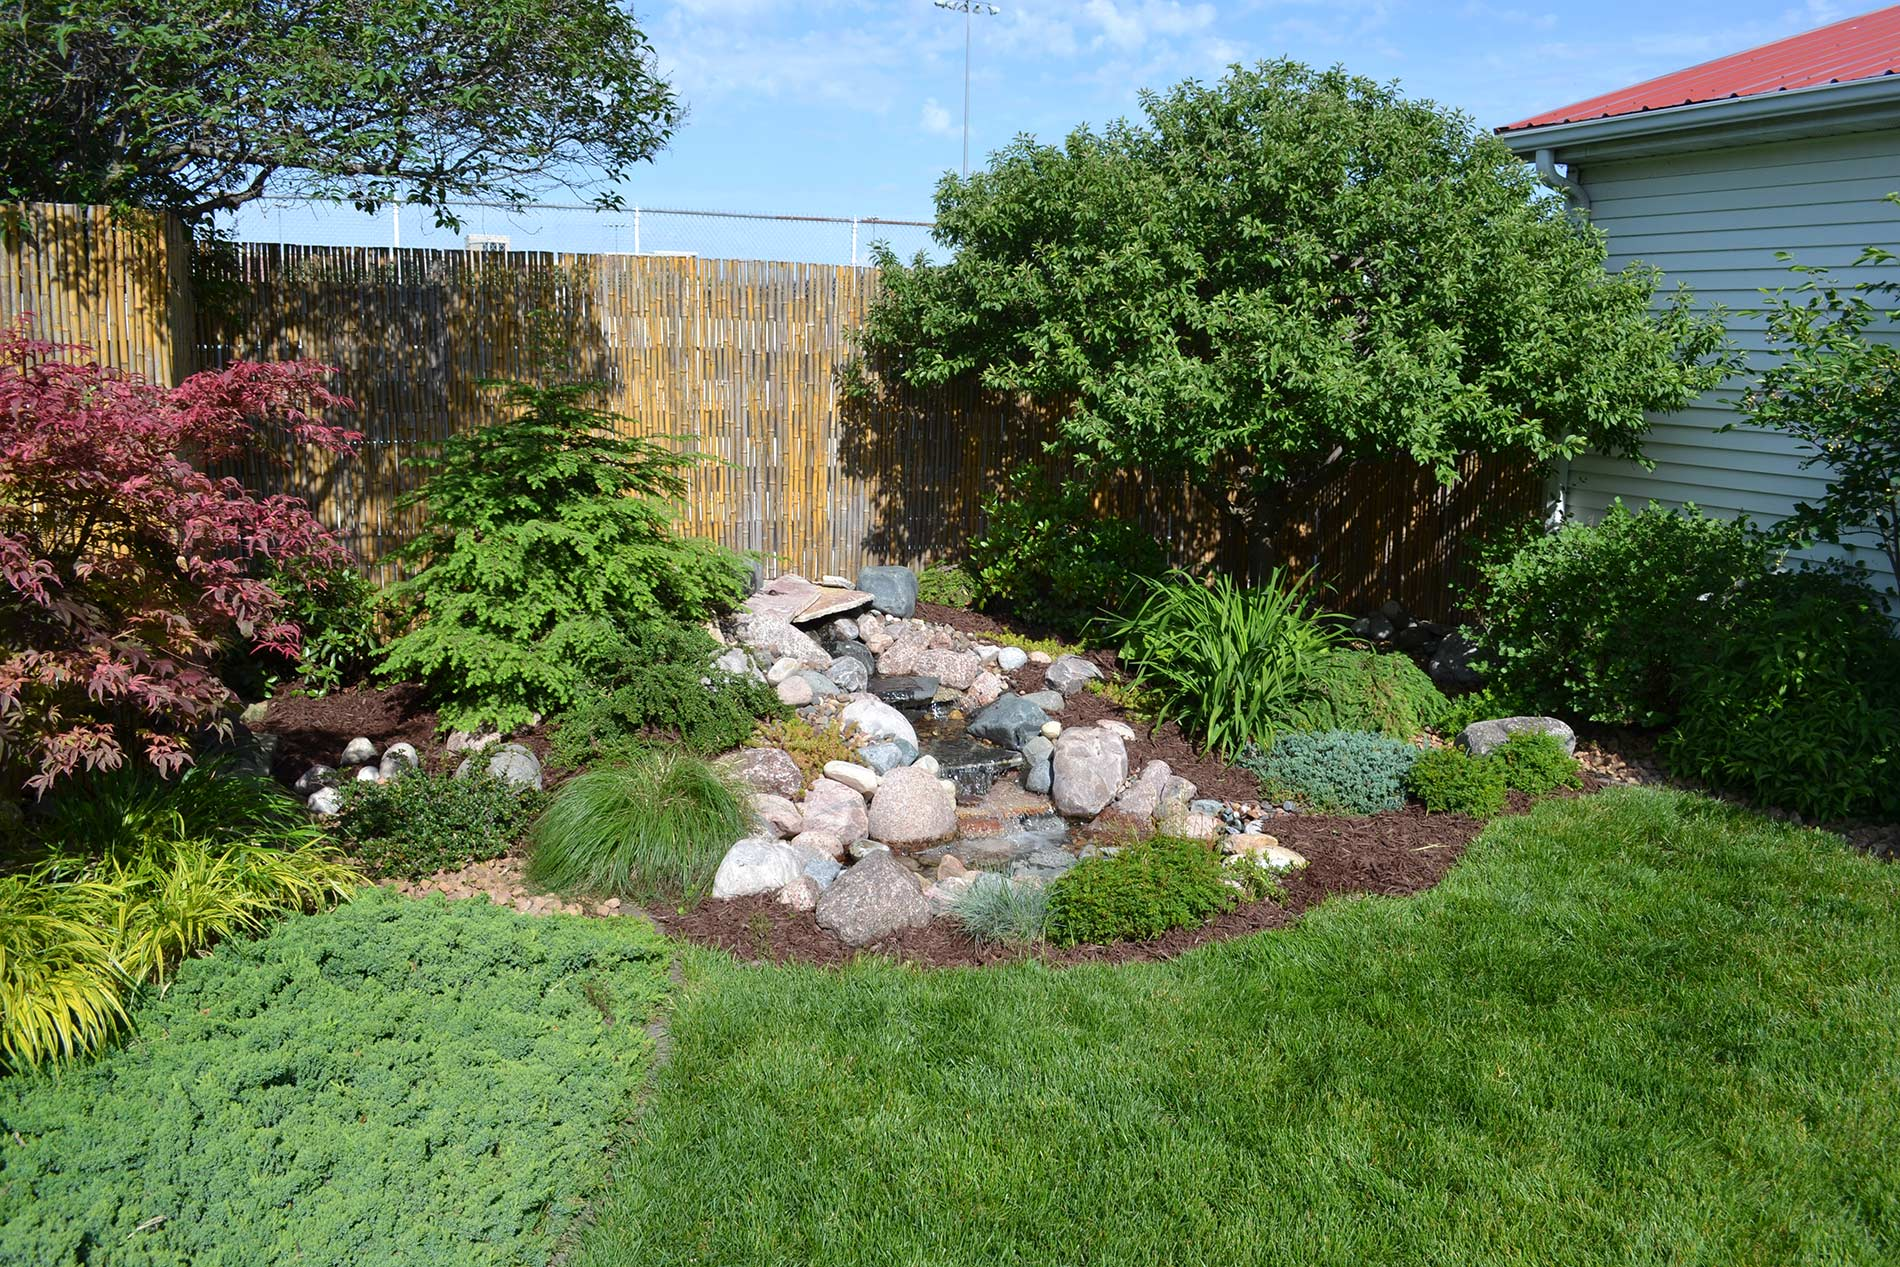 Landscaping services, including installation and maintenance